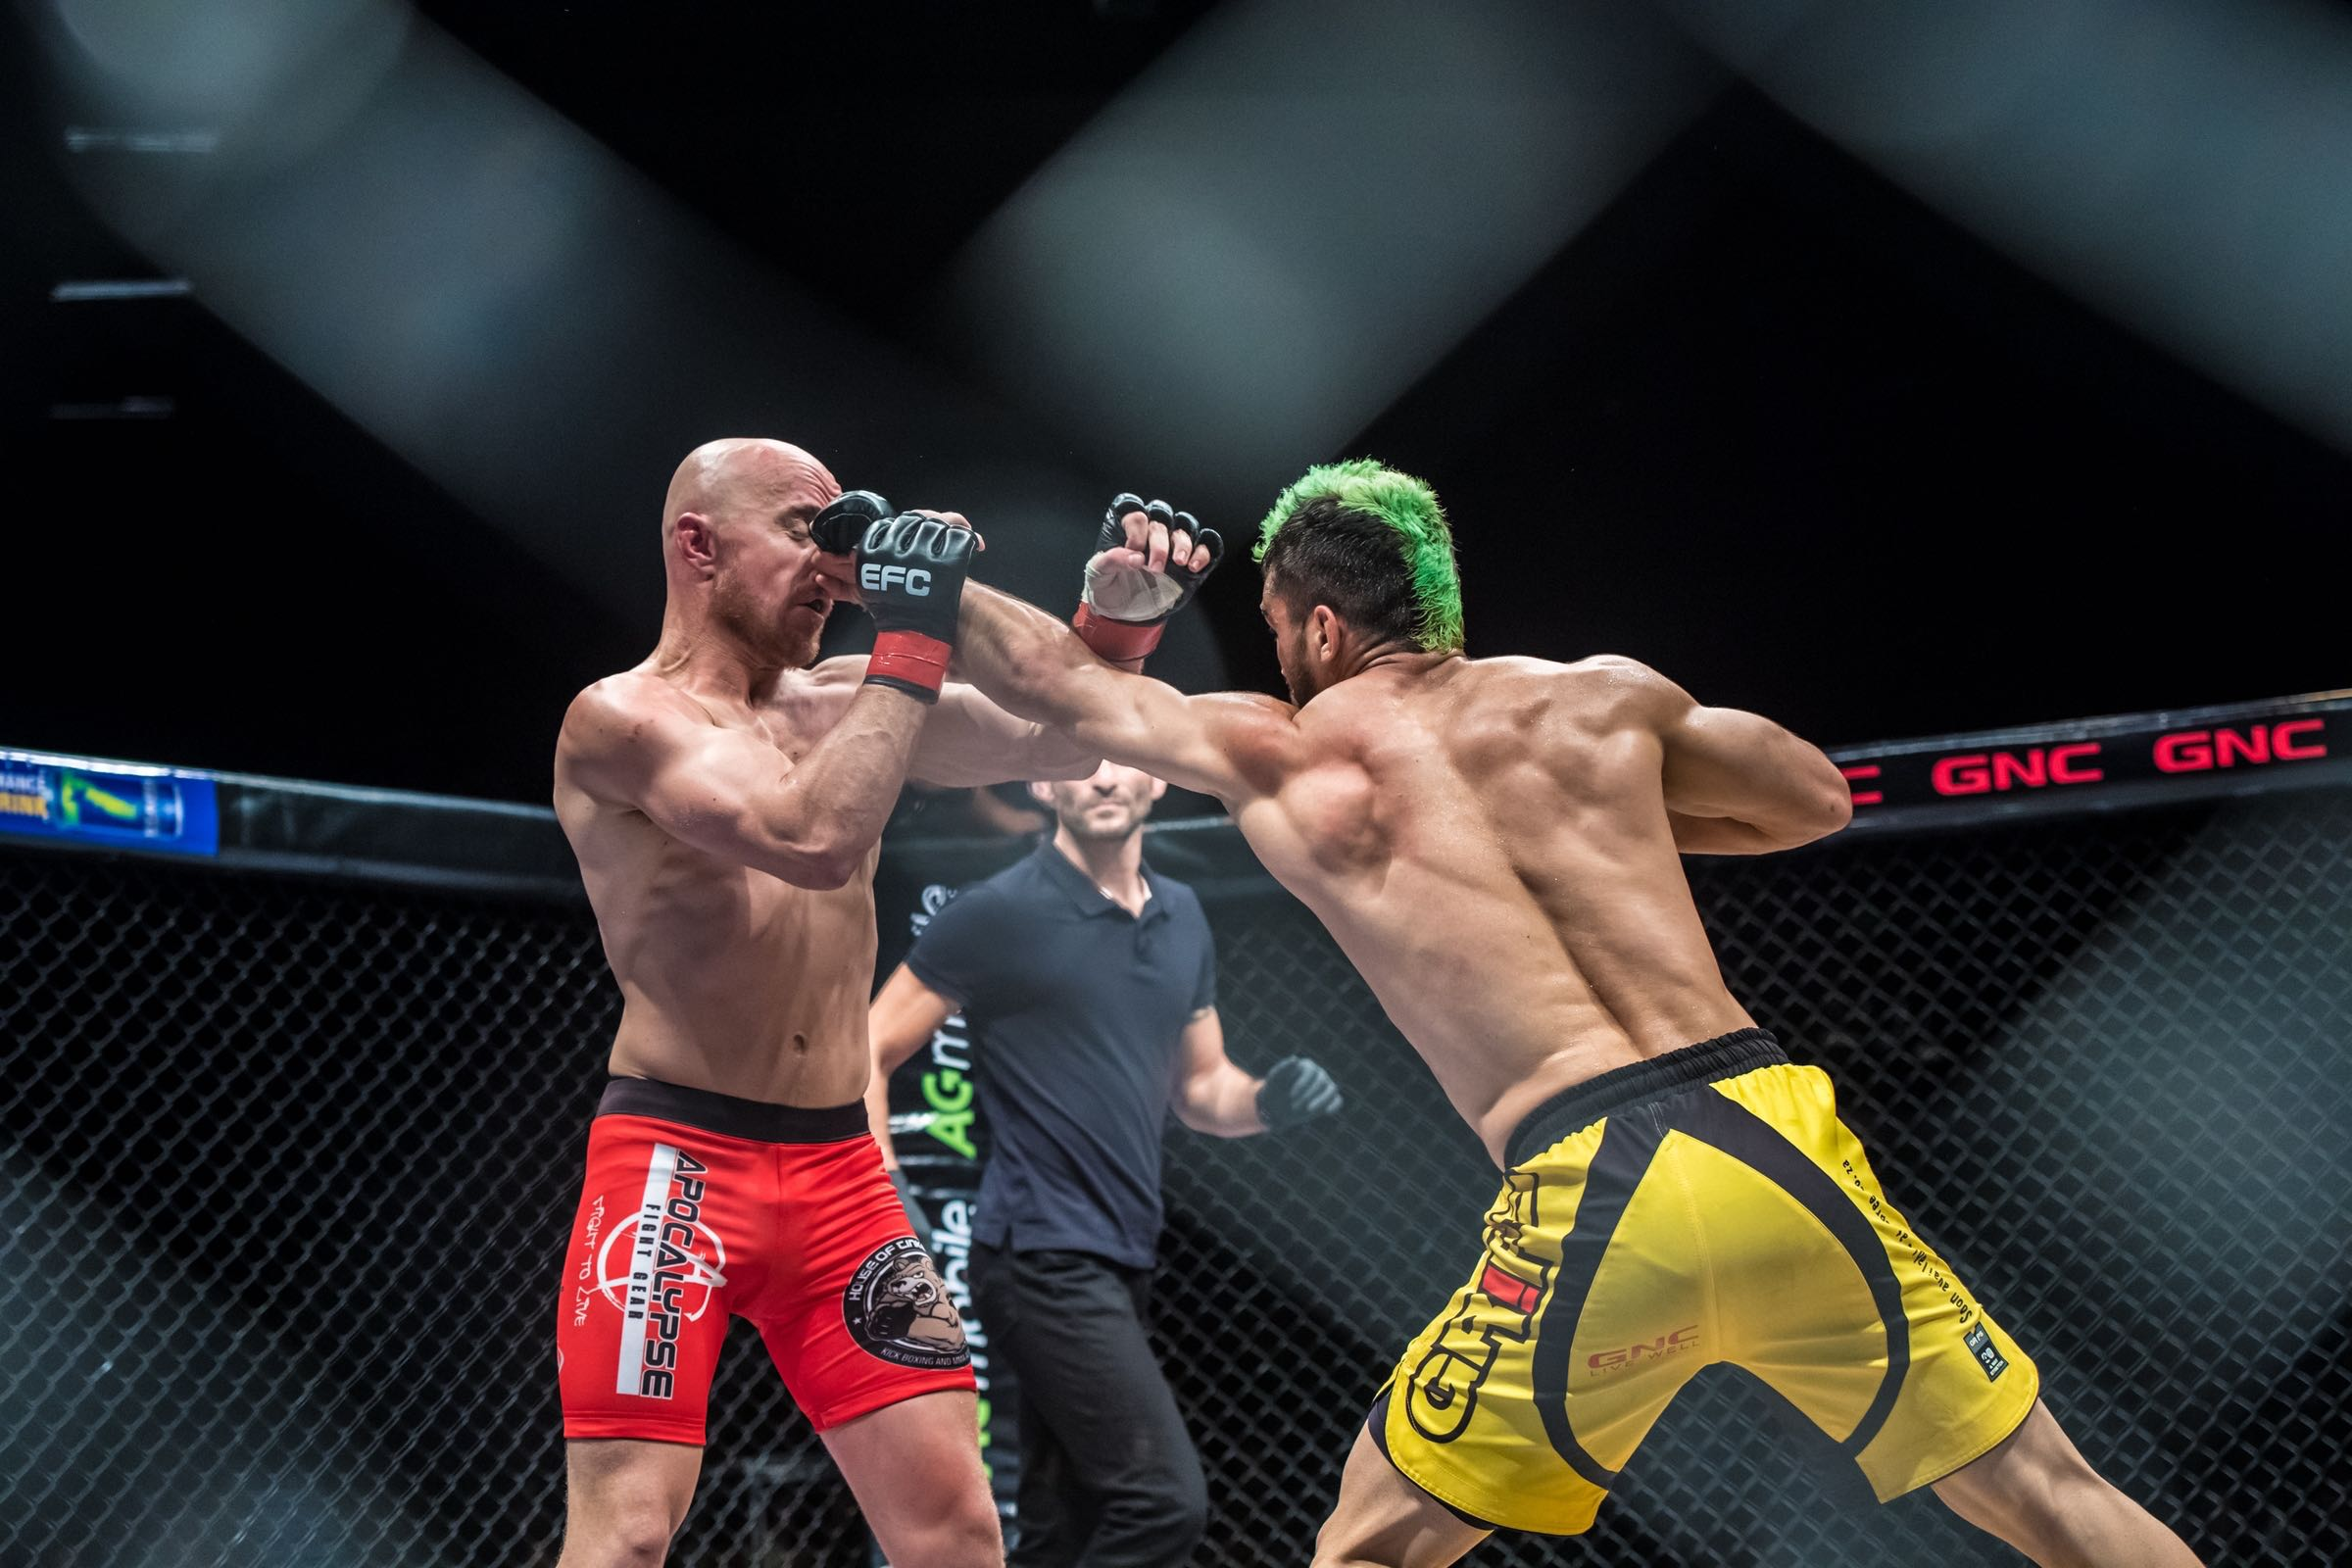 MMA Action with Irshaad Sayed claiming the EFC Bantamweight Title fight